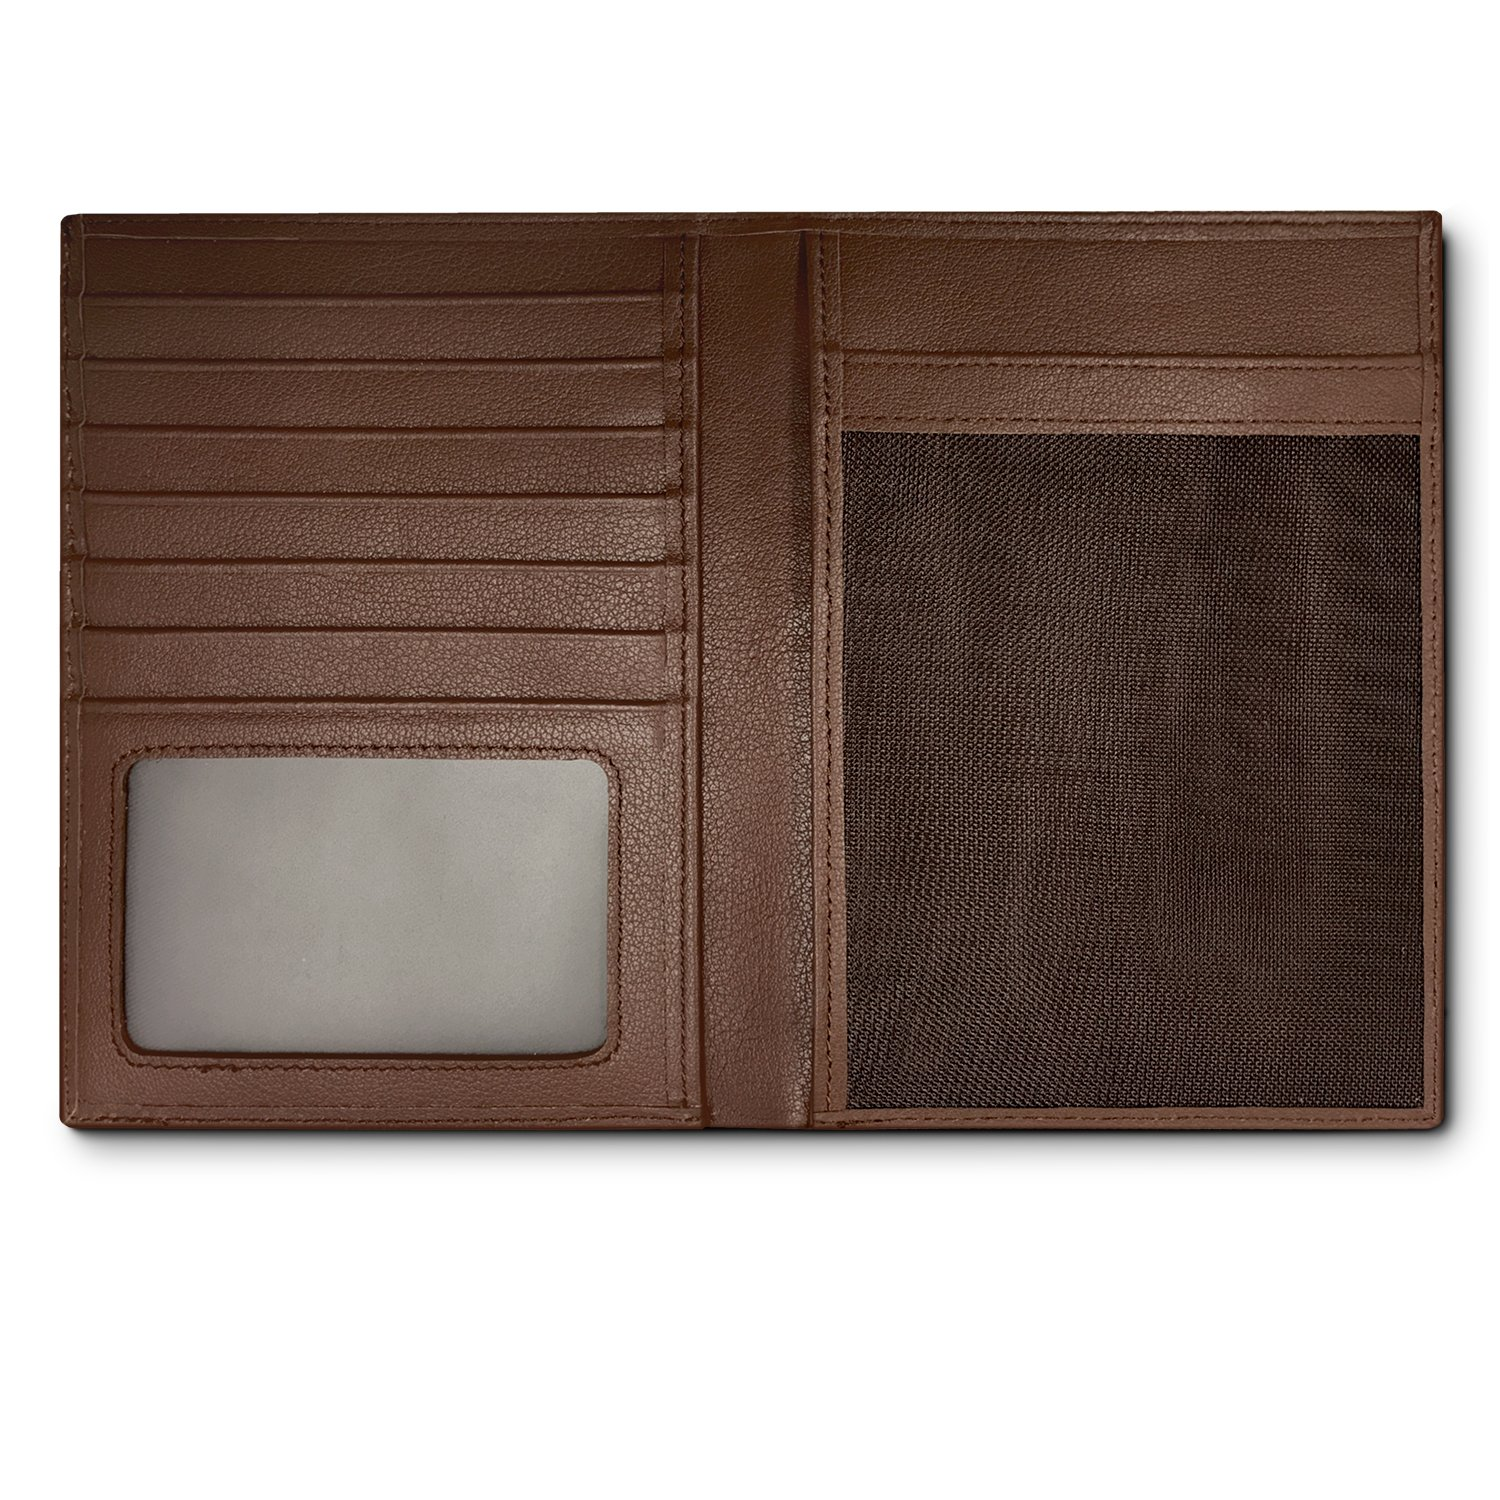 RFID Blocking Leather Passport Holder For Men and Women - Brown by Travel Navigator